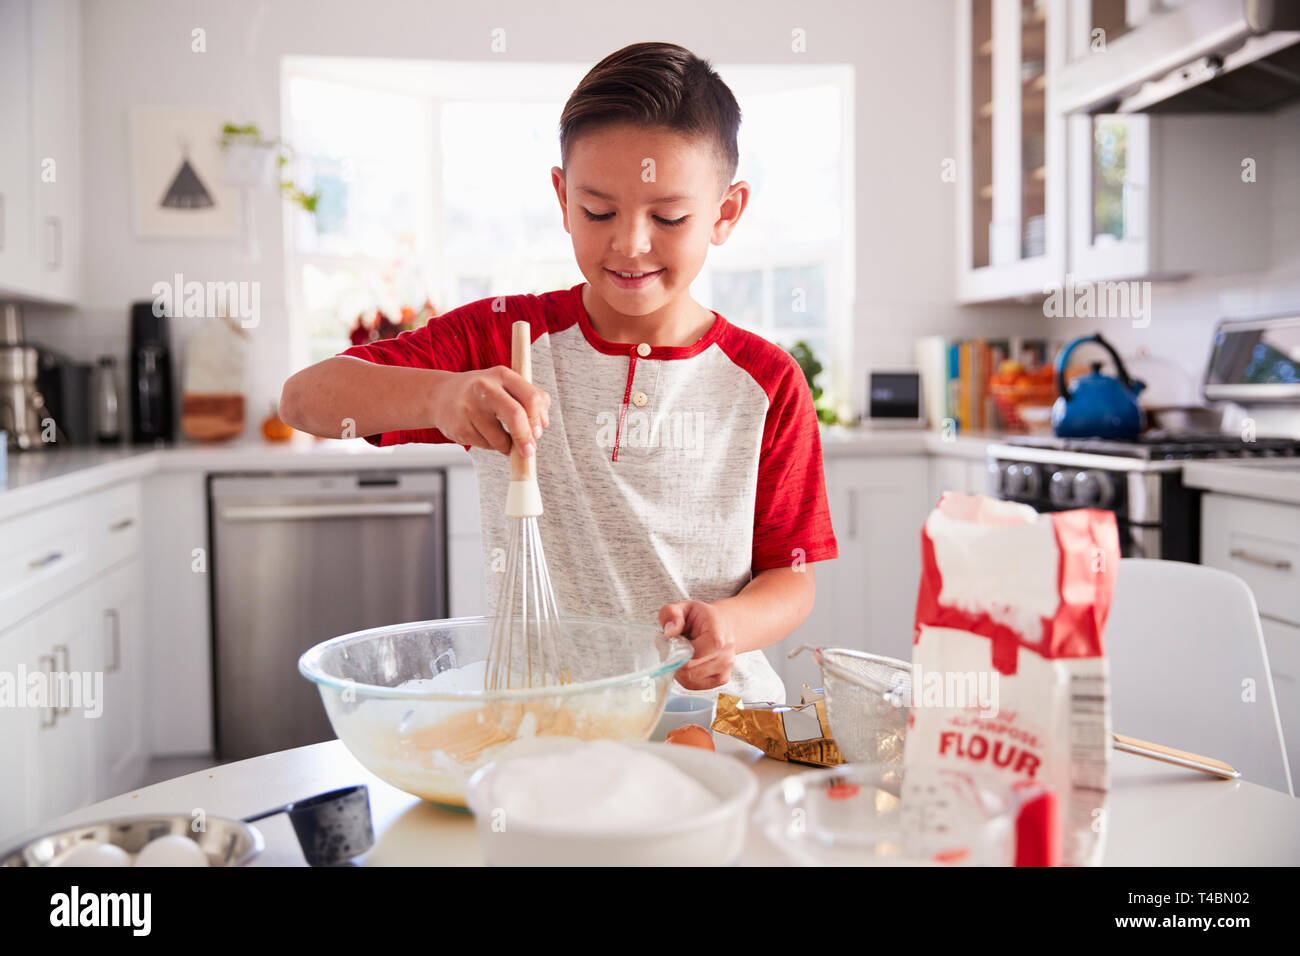 Pre-teen boy making a cake in the kitchen mixing cake mix, smiling, close up - Stock Image